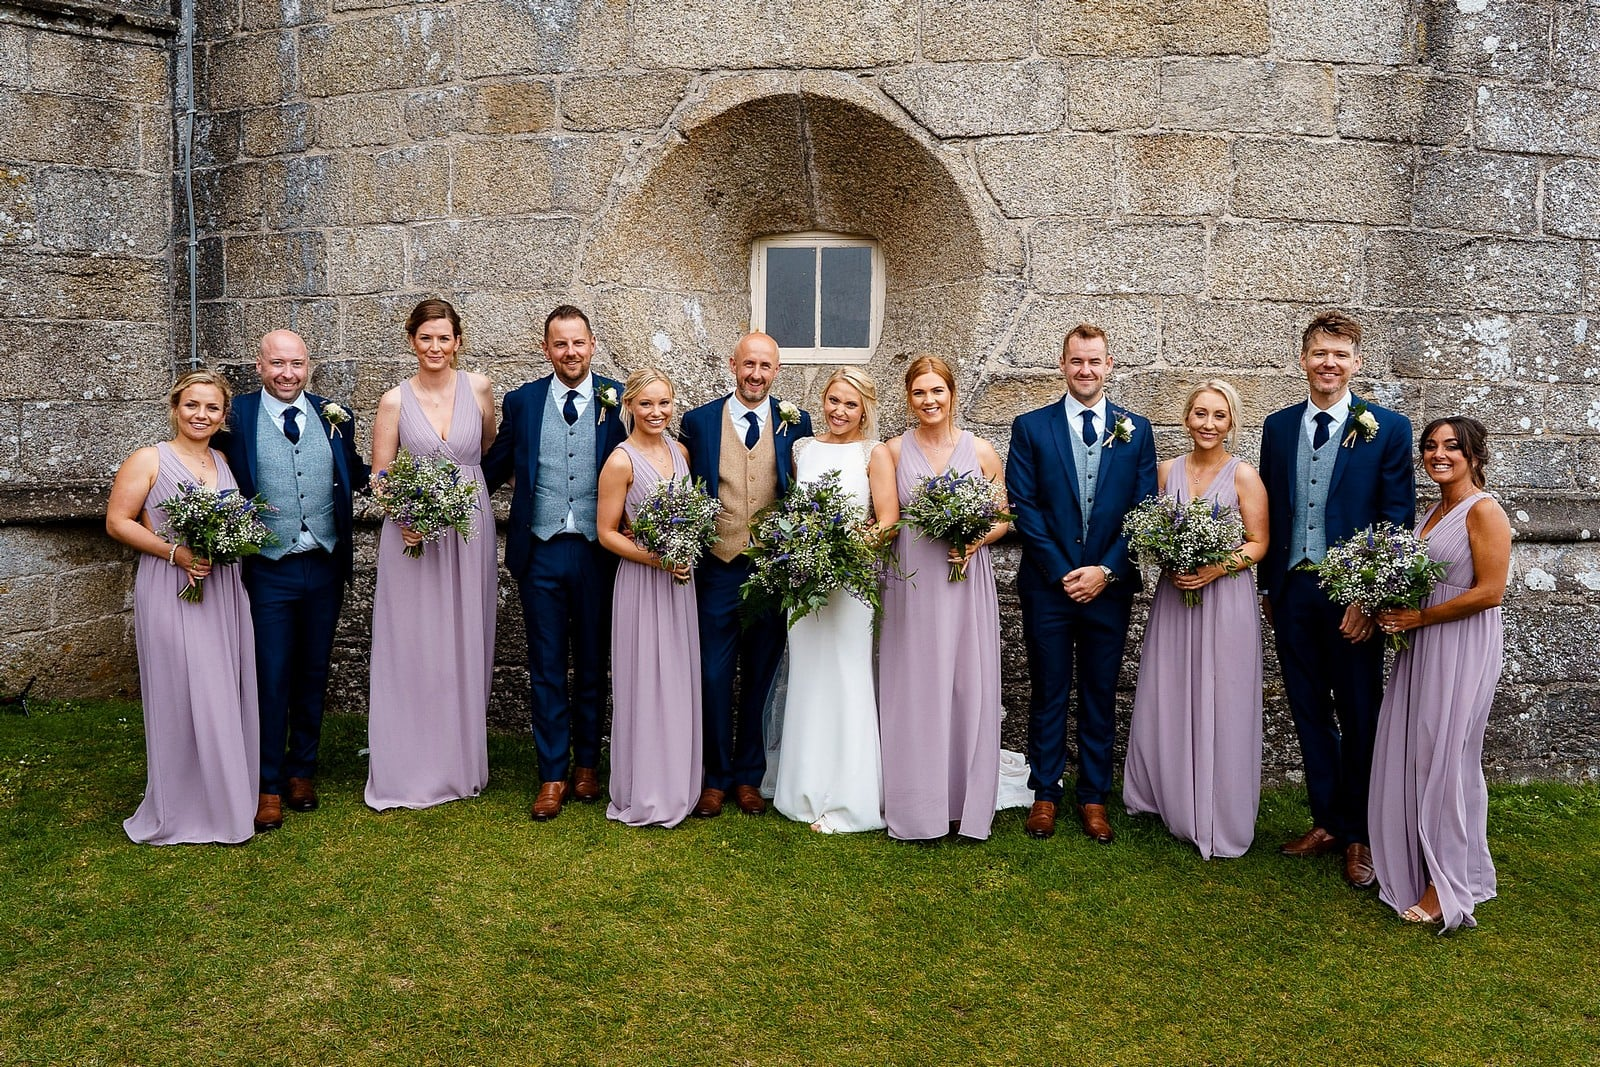 Bridal Party wedding photograph at Pendennis Castle